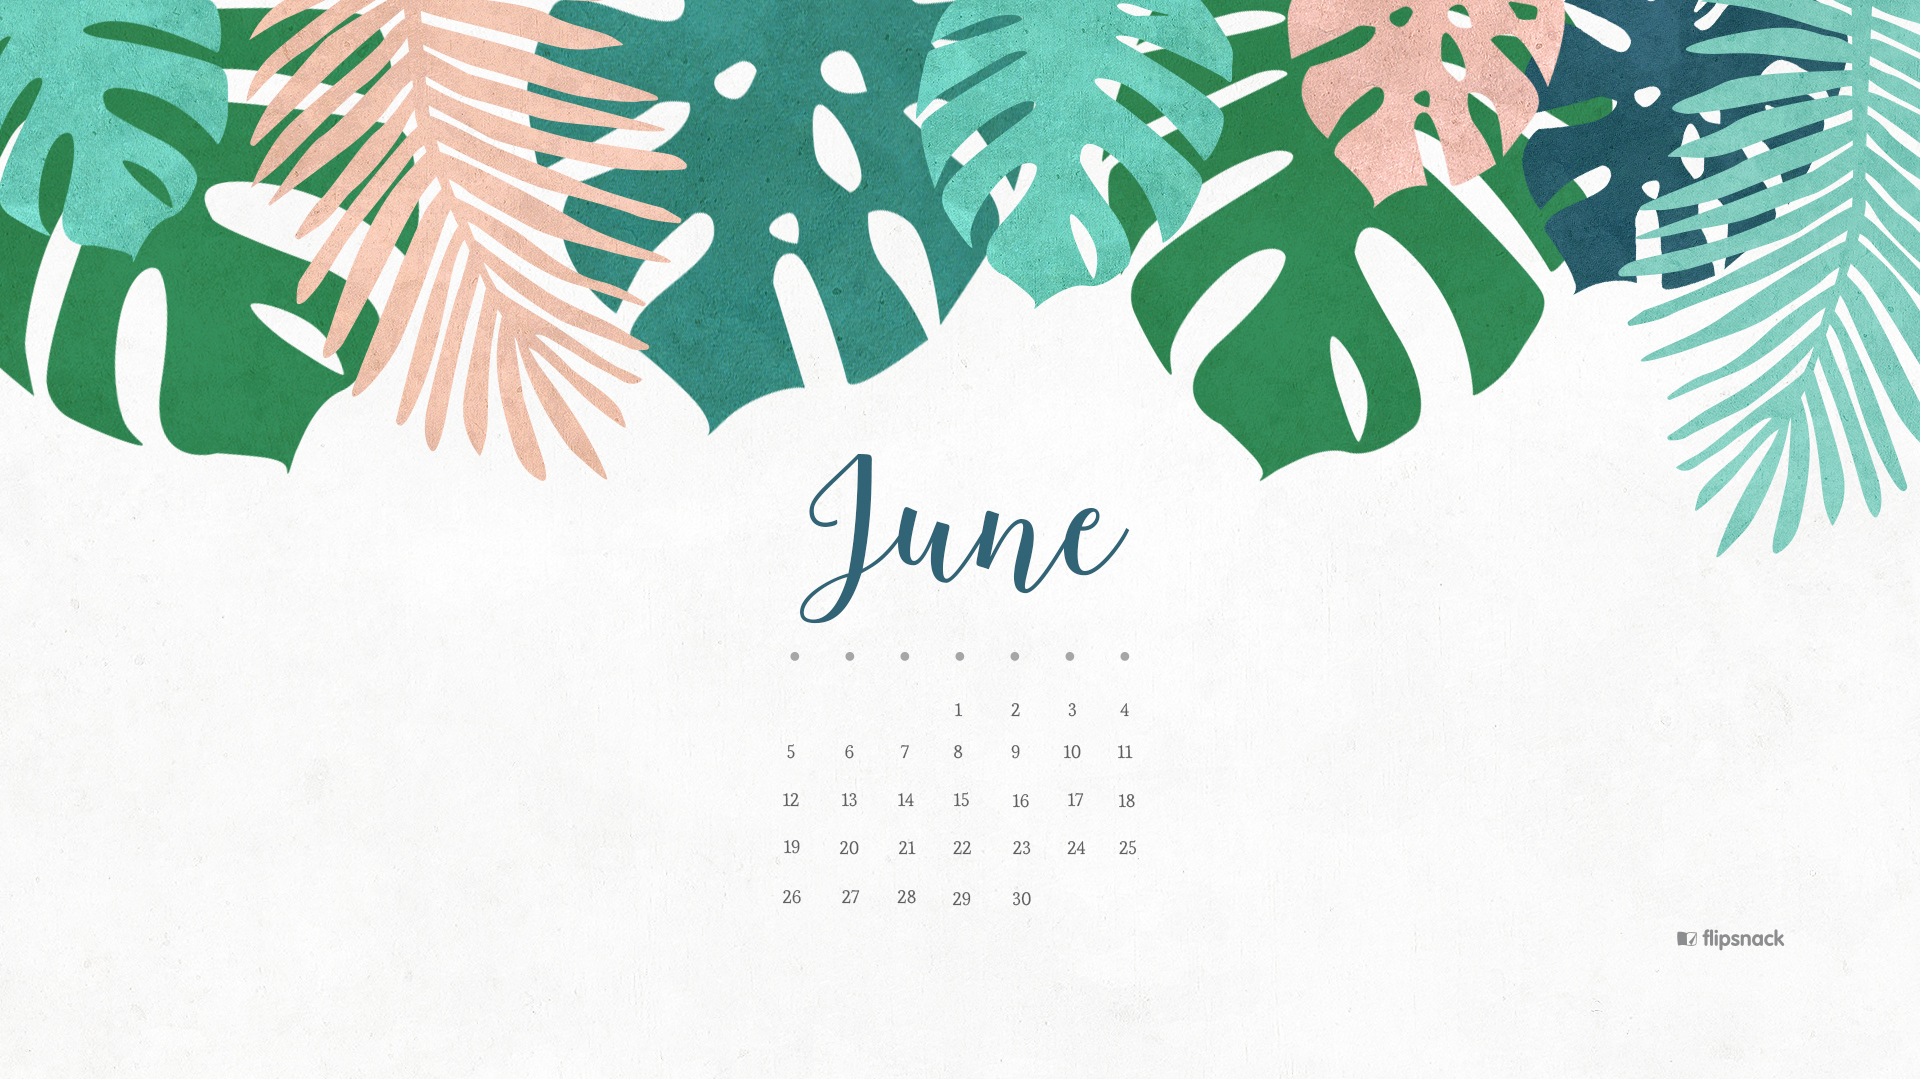 Calendar Wallpaper Pc : June free calendar wallpaper desktop background